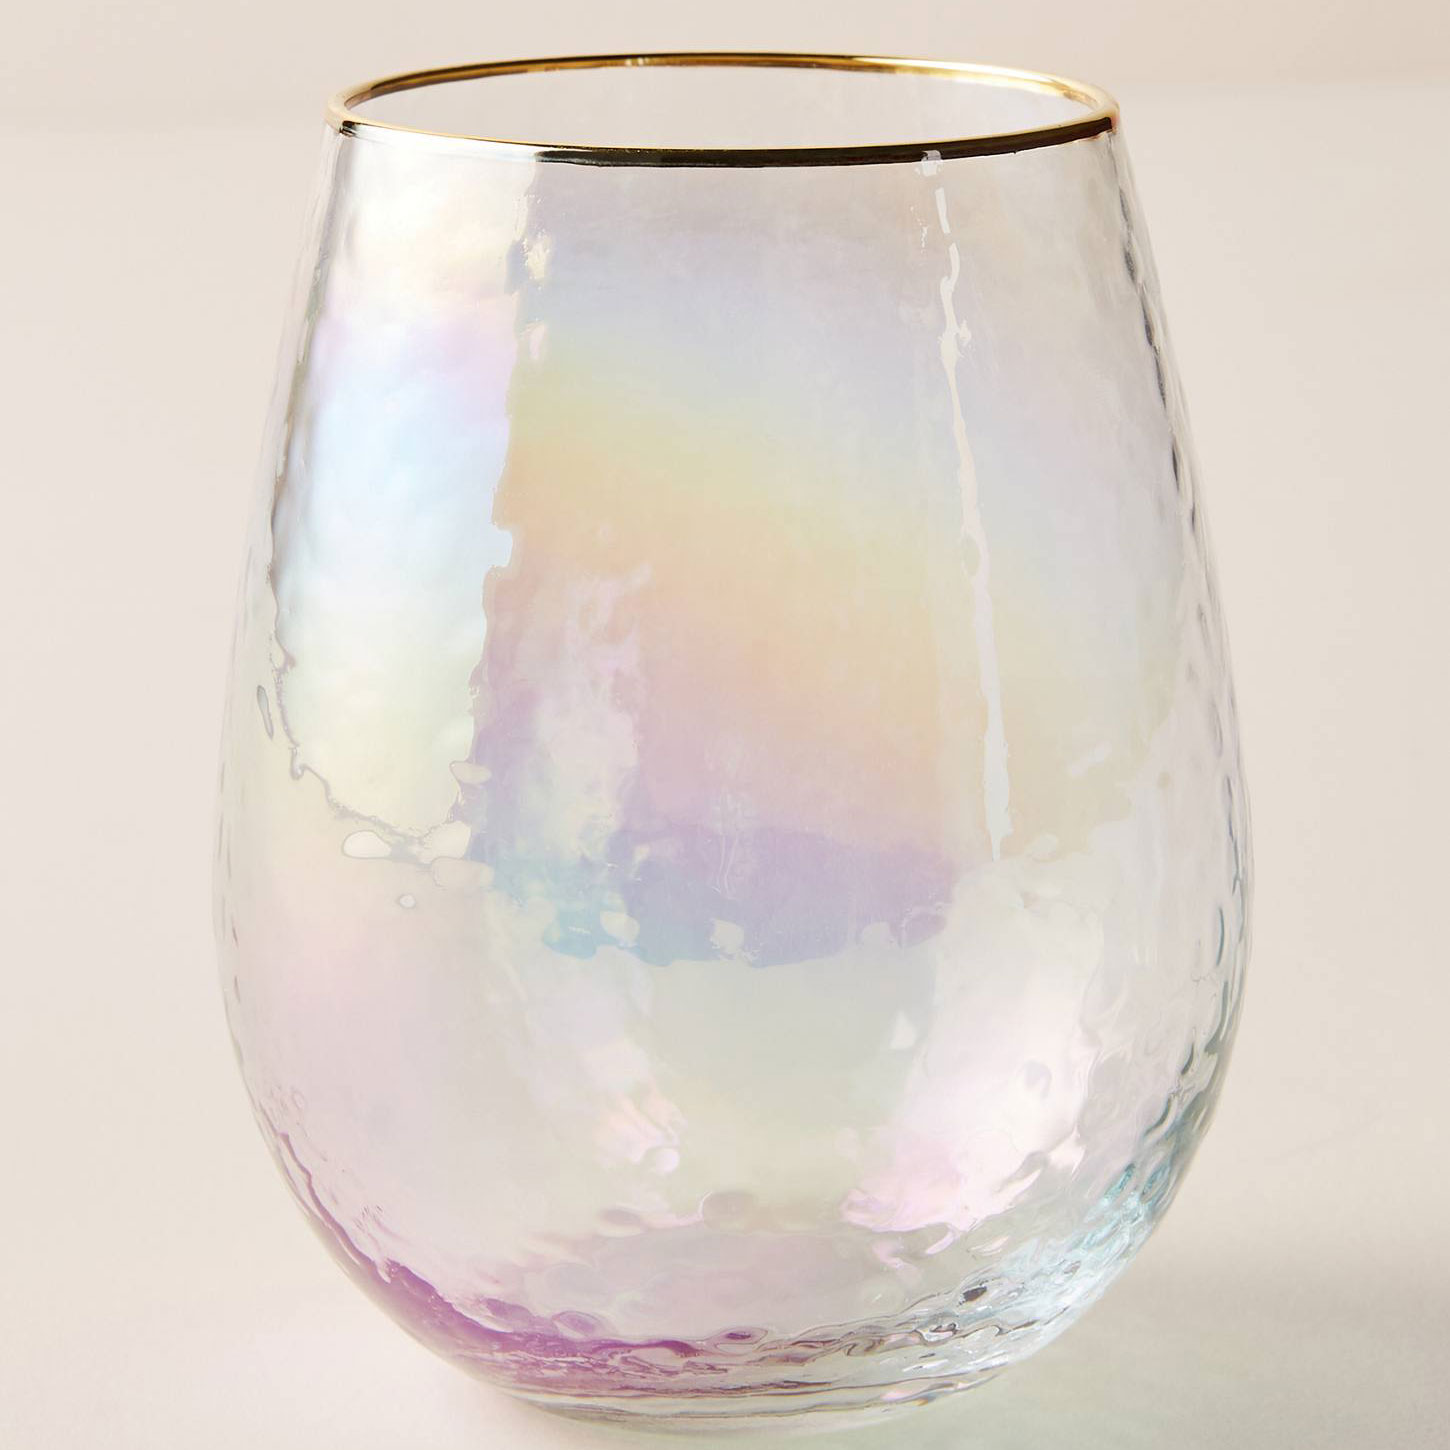 Lustered, stemless wine glass with gold rim